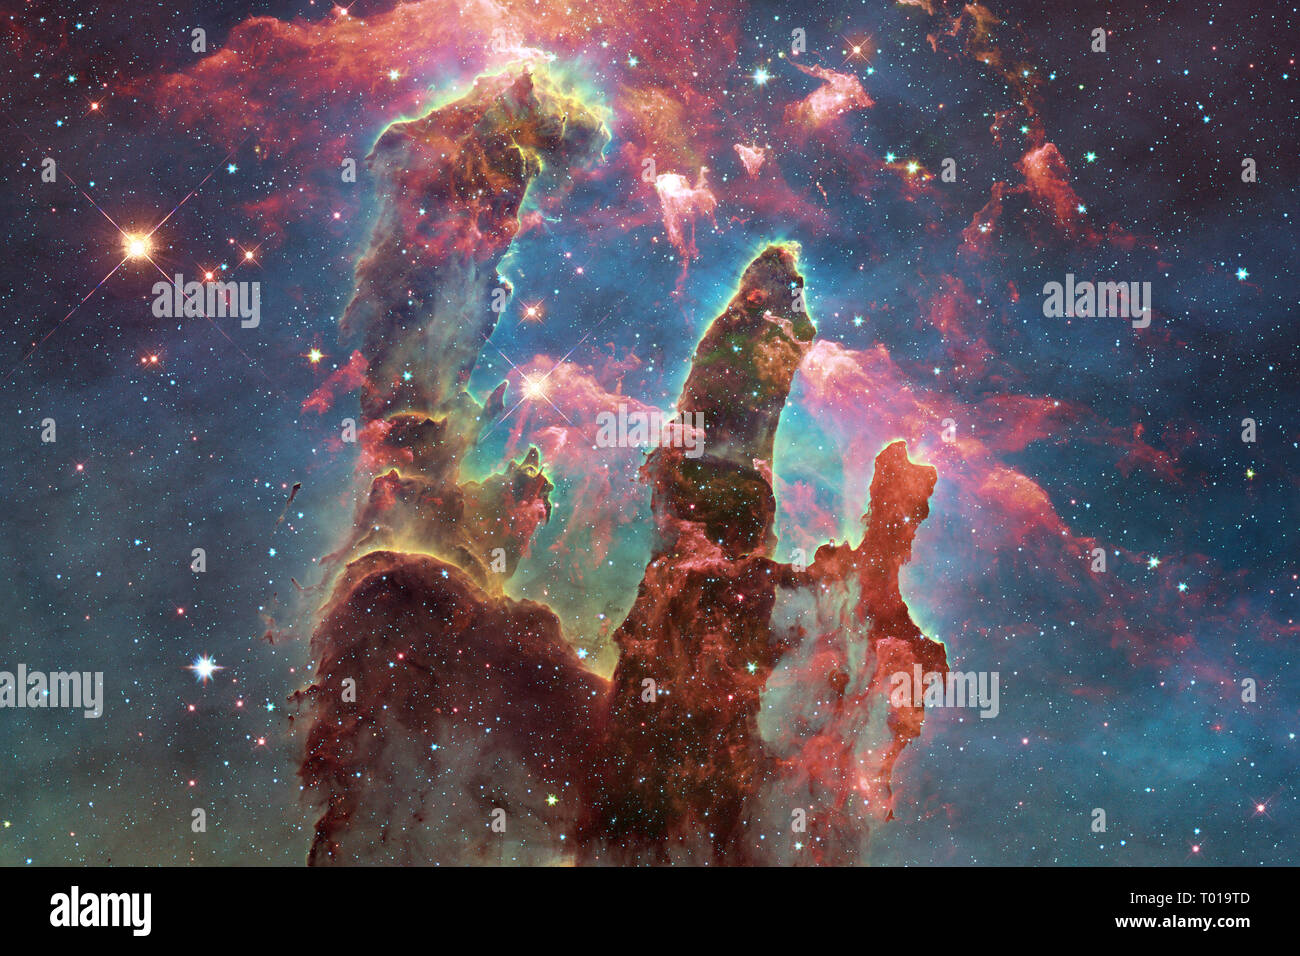 Cosmic Landscape Colorful Science Fiction Wallpaper With Endless Outer Space Elements Of This Image Furnished By Nasa Stock Photo Alamy